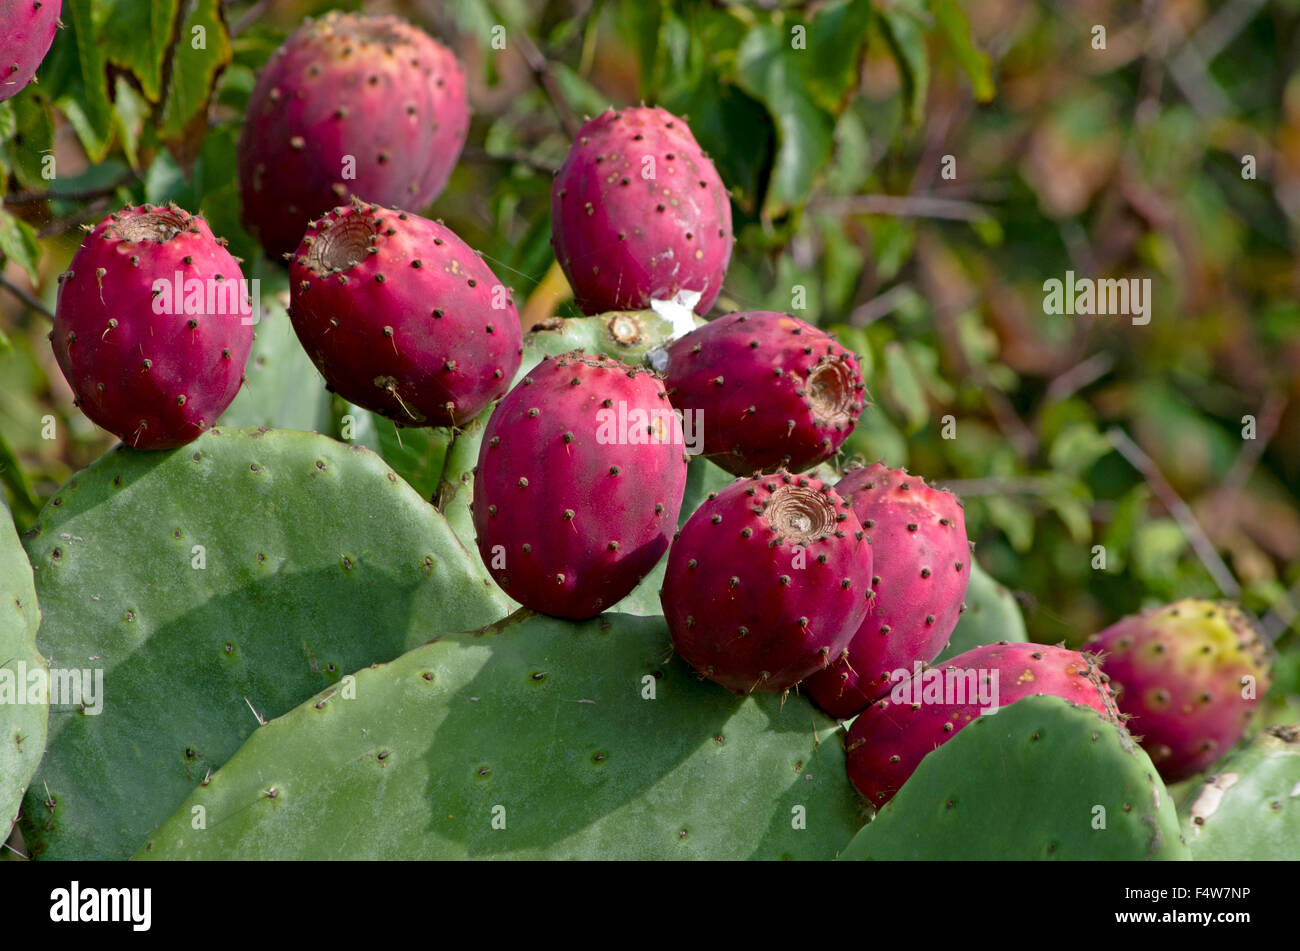 Red and ripe prickly pear on the plant of Opuntia Ficus Indica - Stock Image